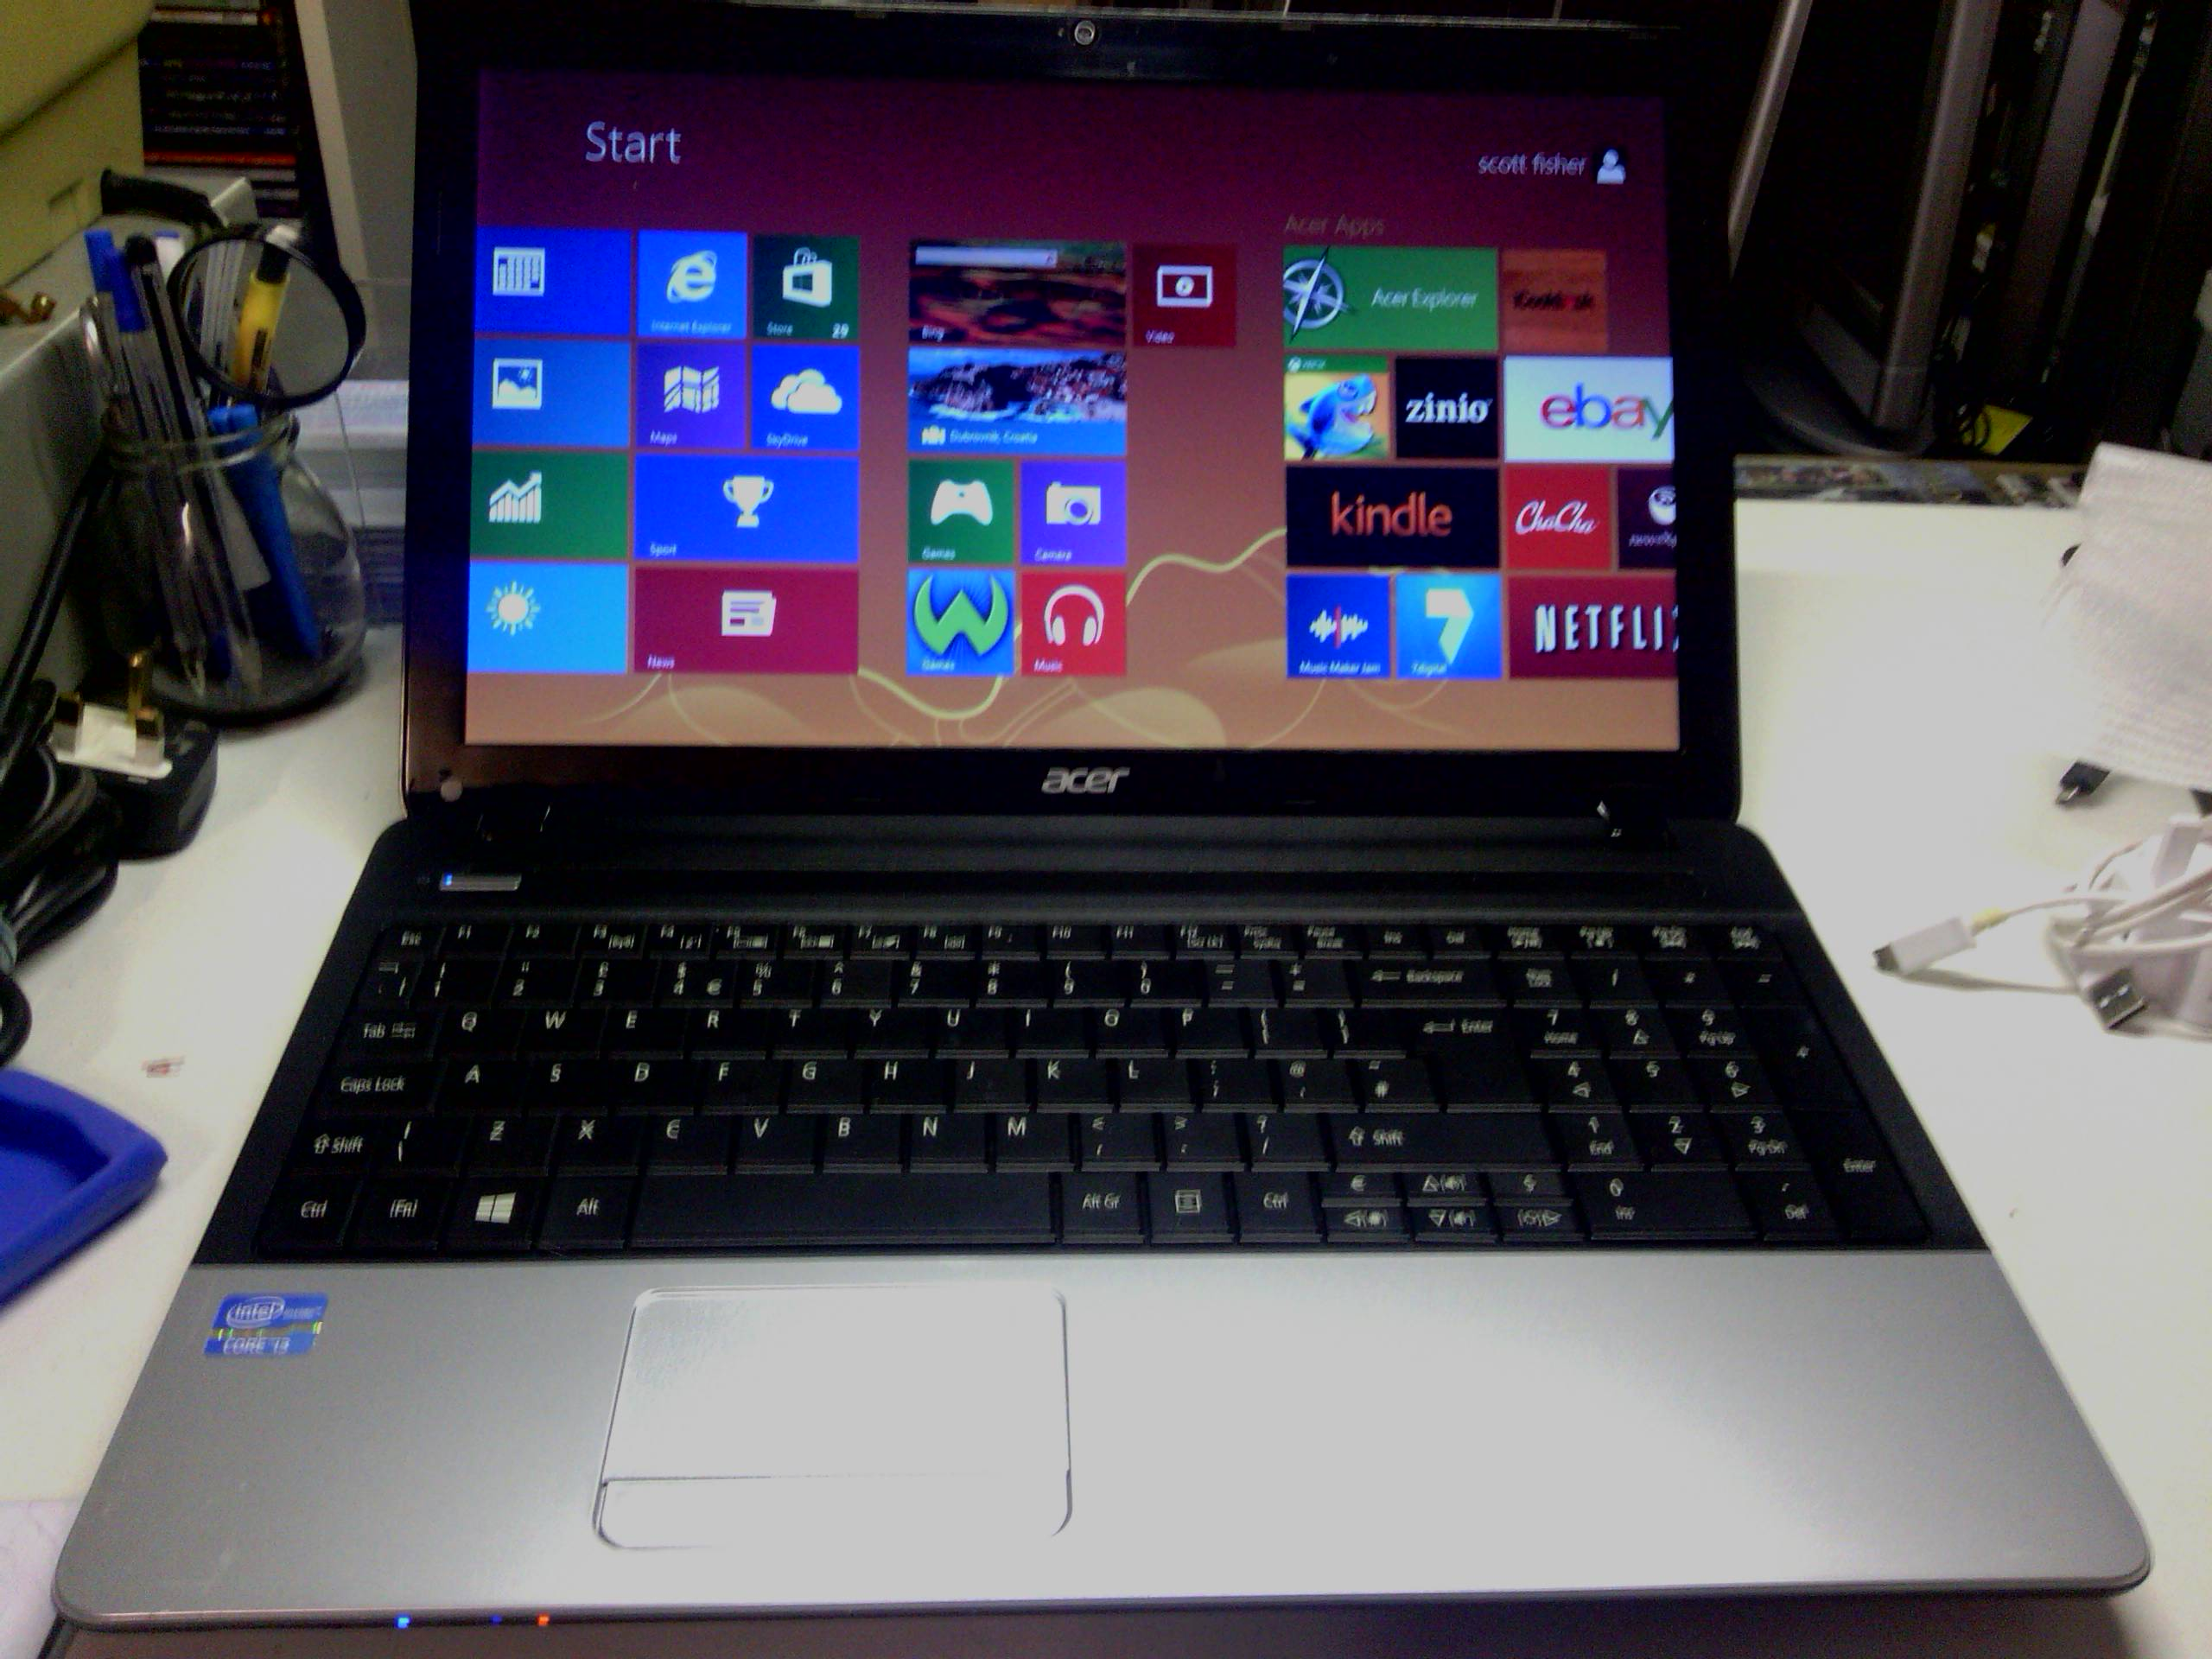 Acer | E explore beyond limits 75GB0HD 6GBram win8